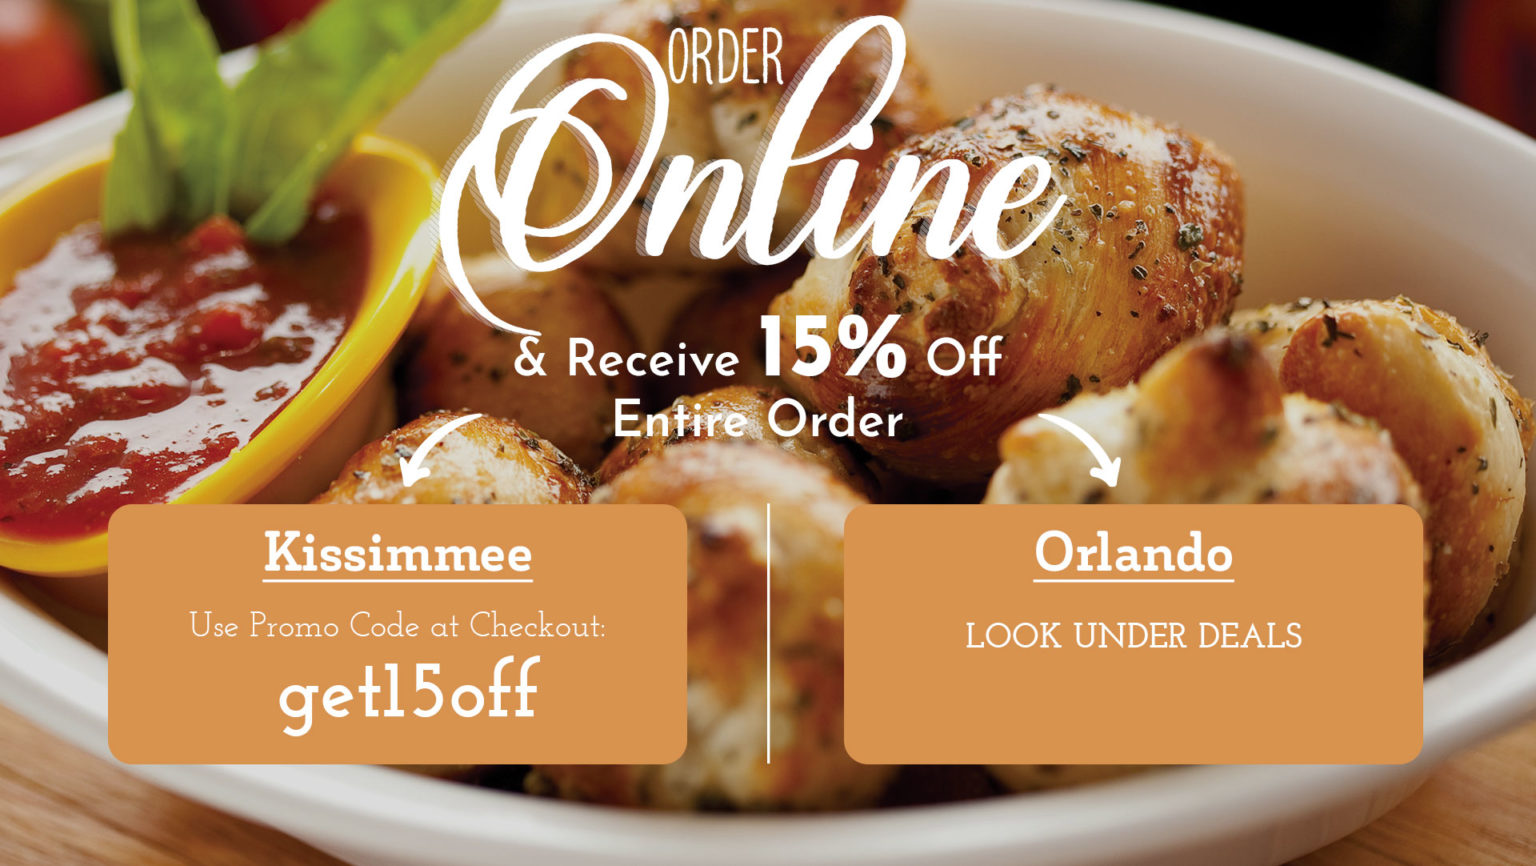 "Order Online & Receive 15% Off your Entire Order - Ordering from Kissimmee, use the Promo Code ""get15off"". Ordering from Orlando, look under the deals section."